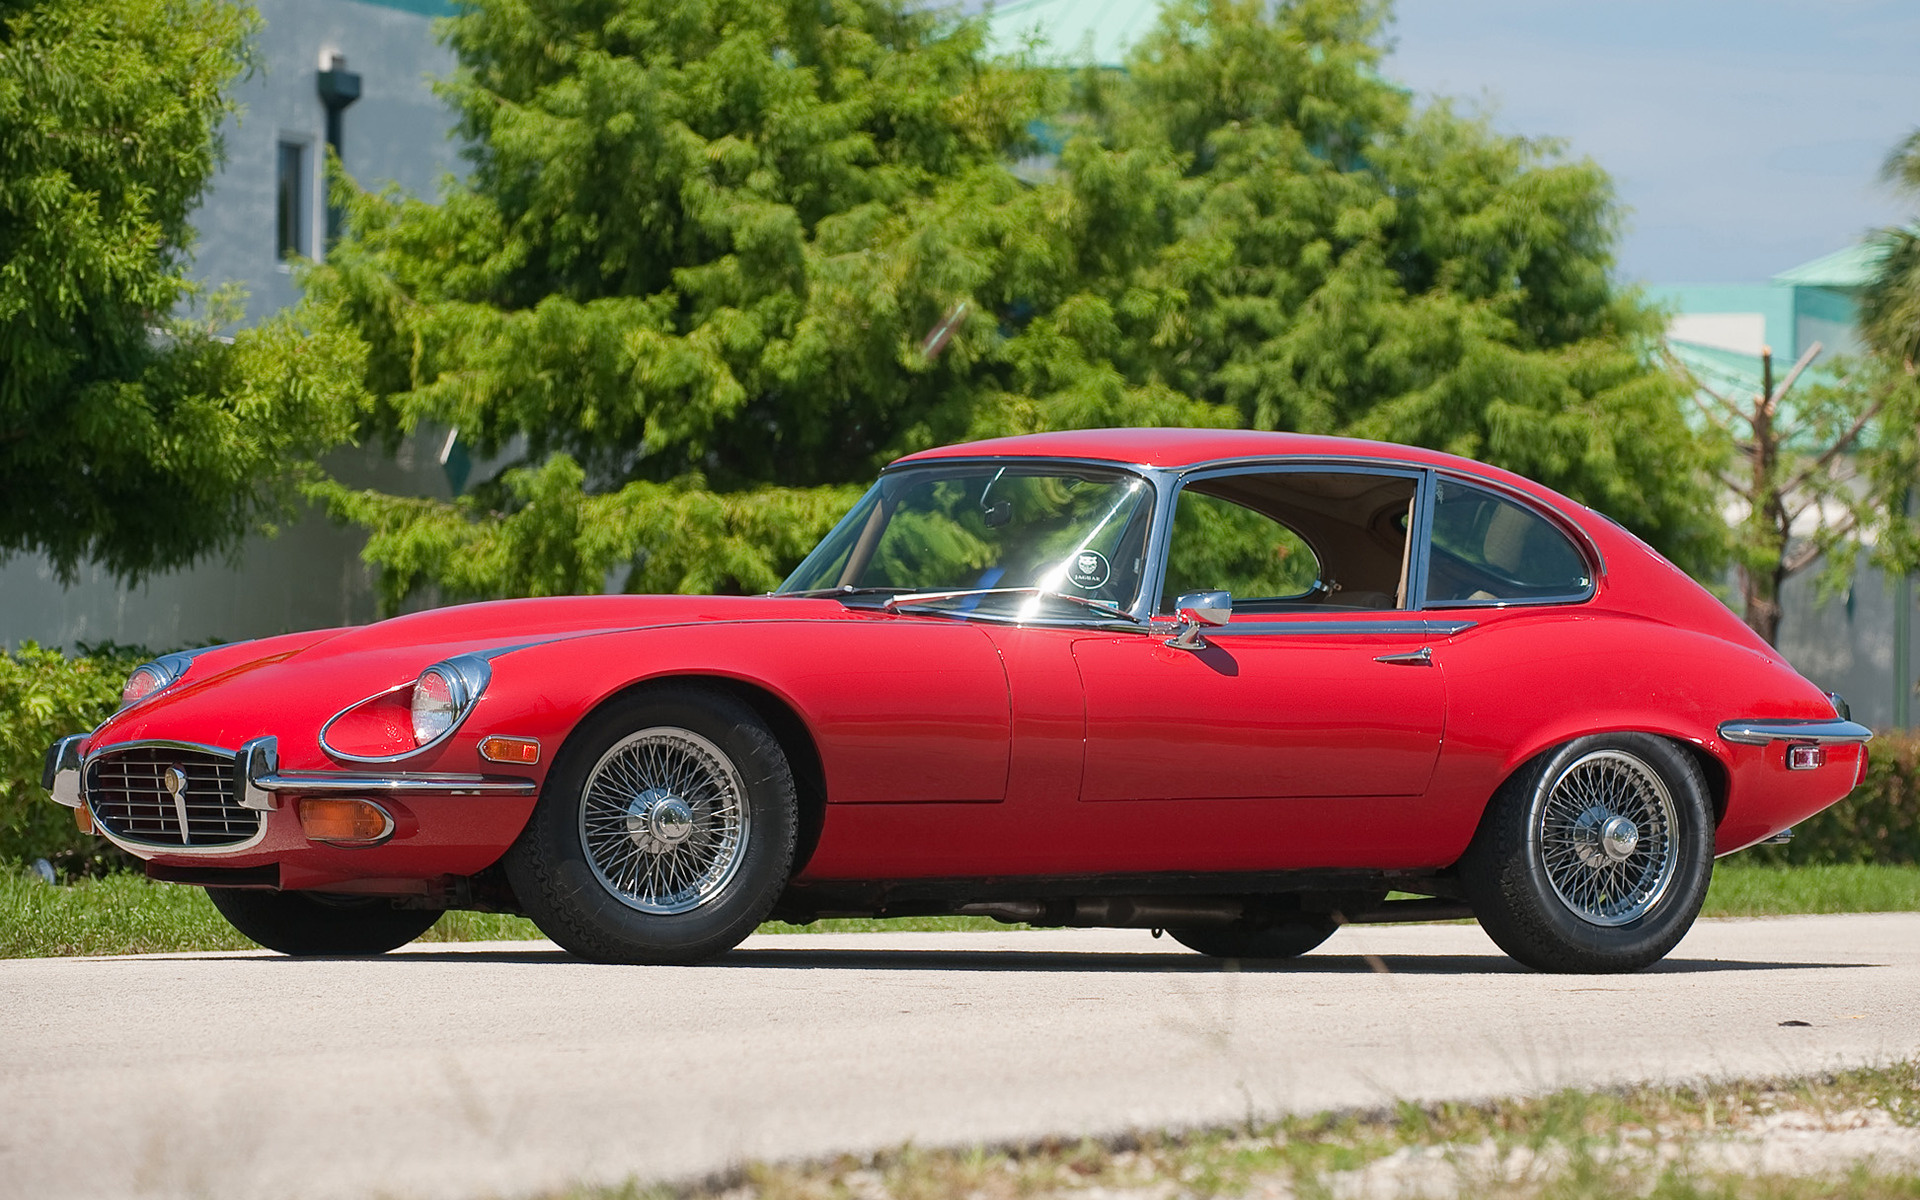 Jaguar F Type Coupe >> Jaguar E-Type V12 2+2 Coupe (1971) US Wallpapers and HD ...